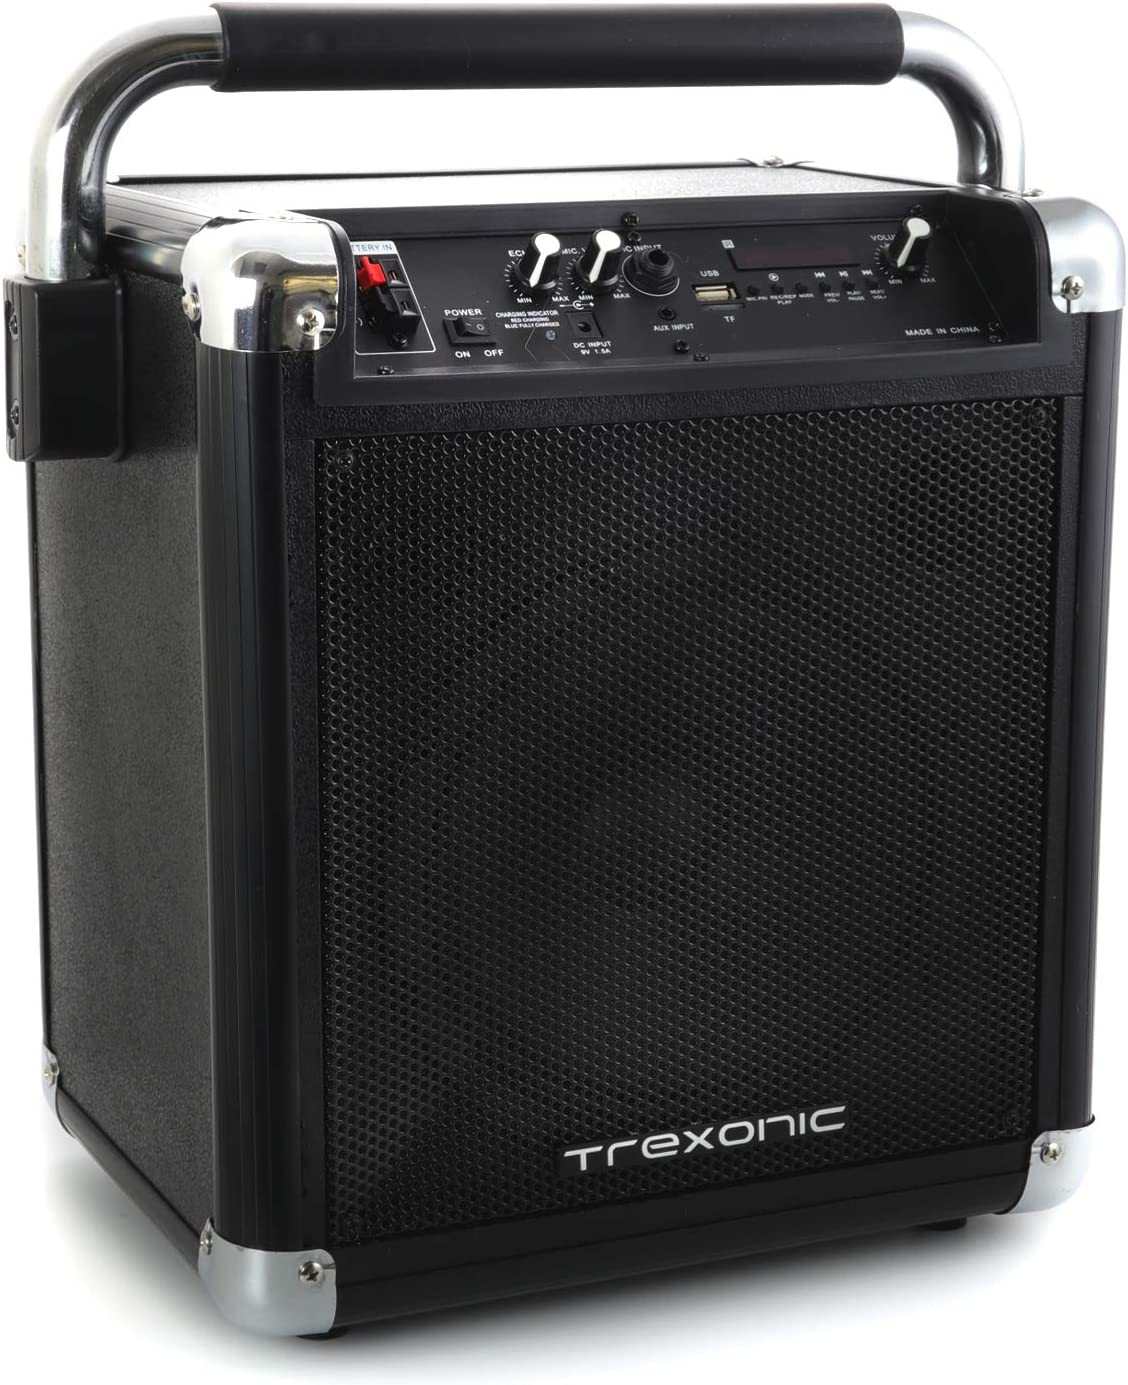 FM Radio /& Microphone Trexonic Wireless Portable Party Speaker with USB Recording Black